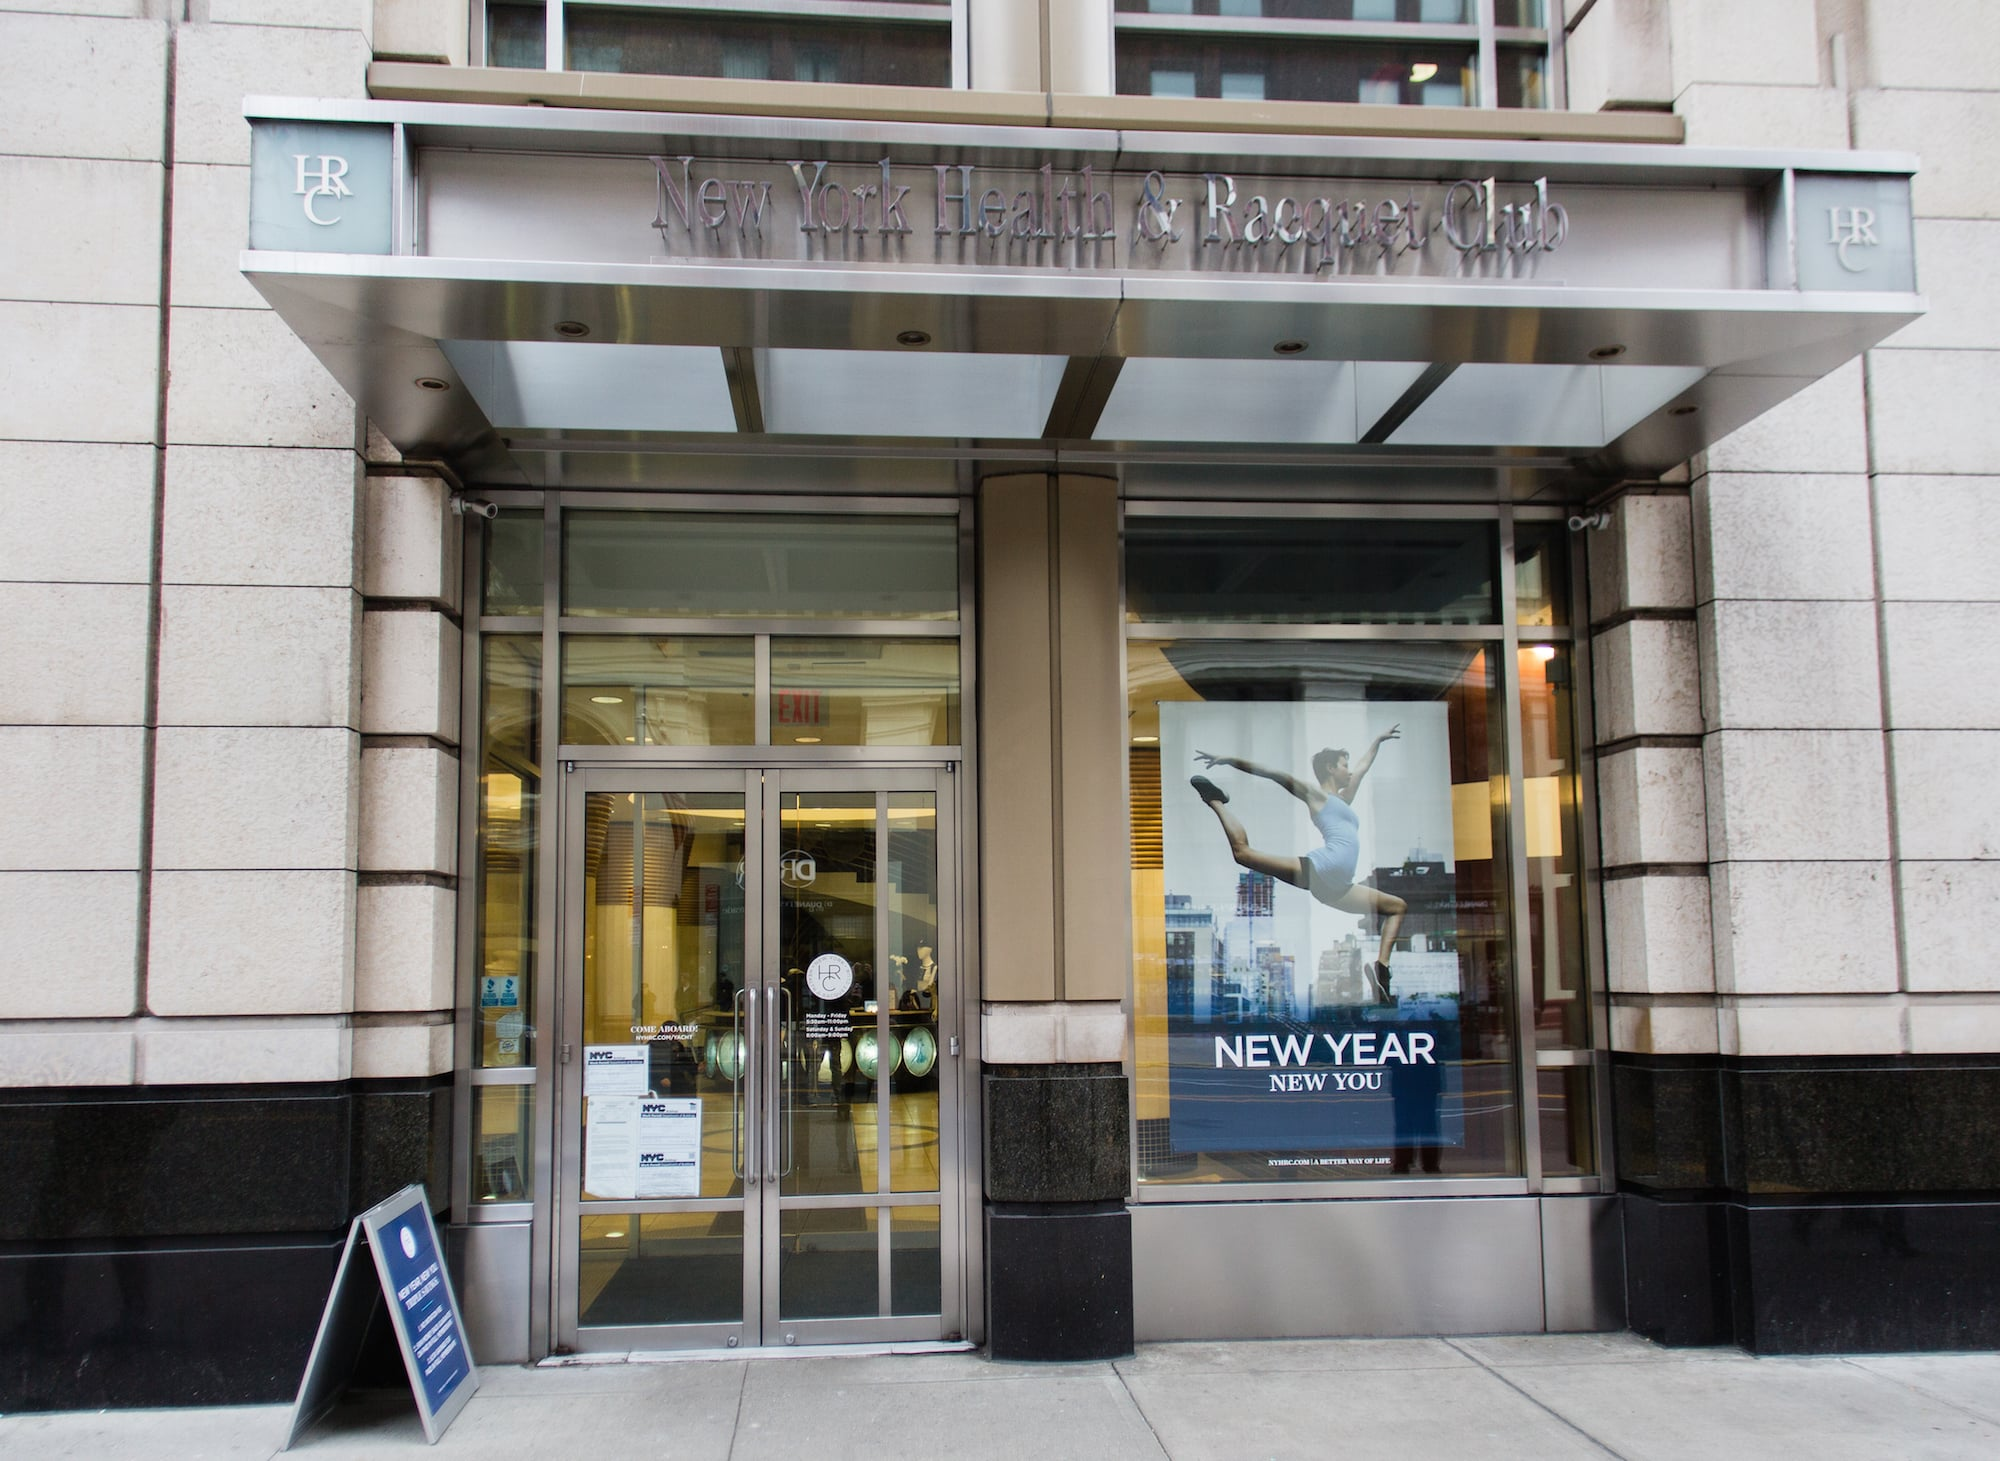 New York Health & Racquet Club:  60 West 23rd St. 6th Ave.New York,NY 10010 -Members receive access to a monthly membership for just $99.